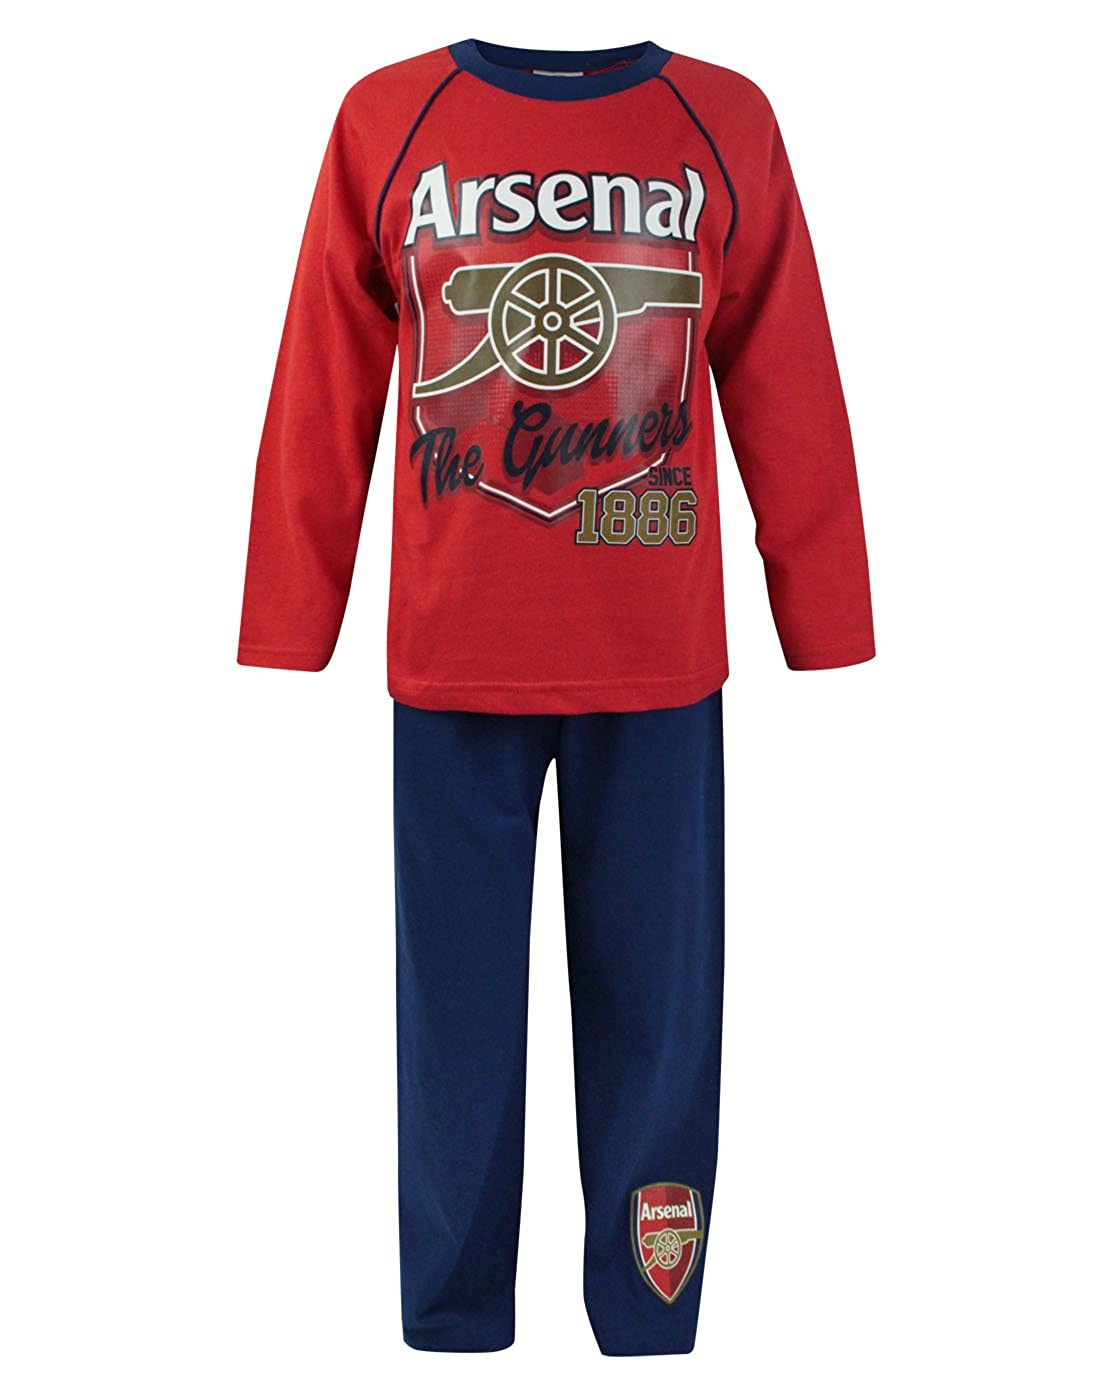 Official Arsenal Boy's Pyjamas